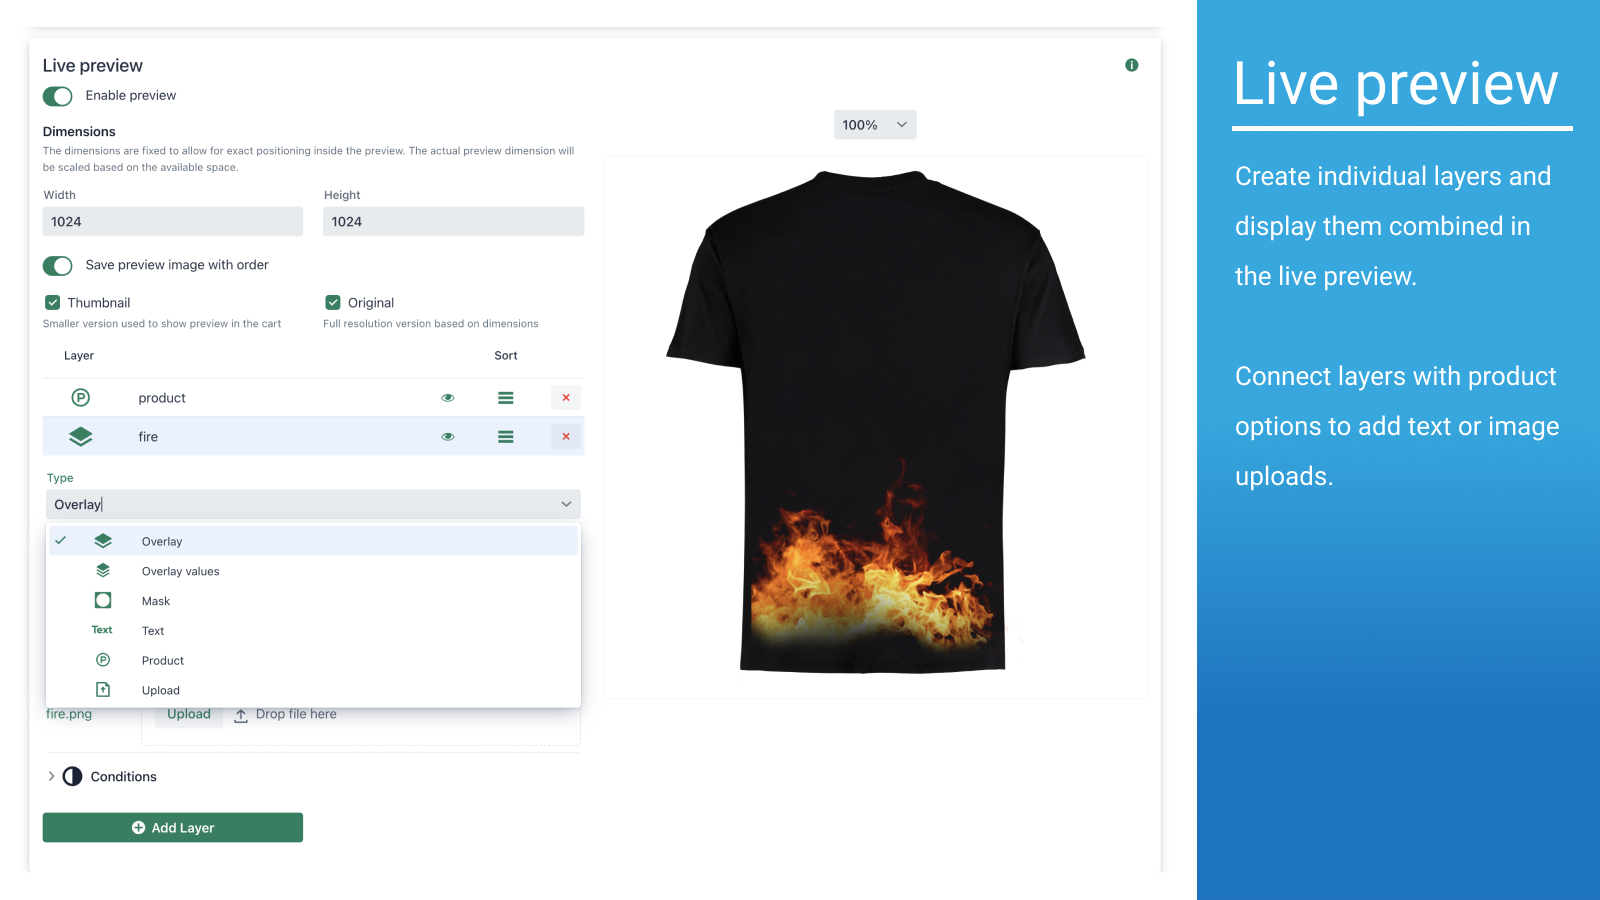 Create individual layers and display them combined in the previe